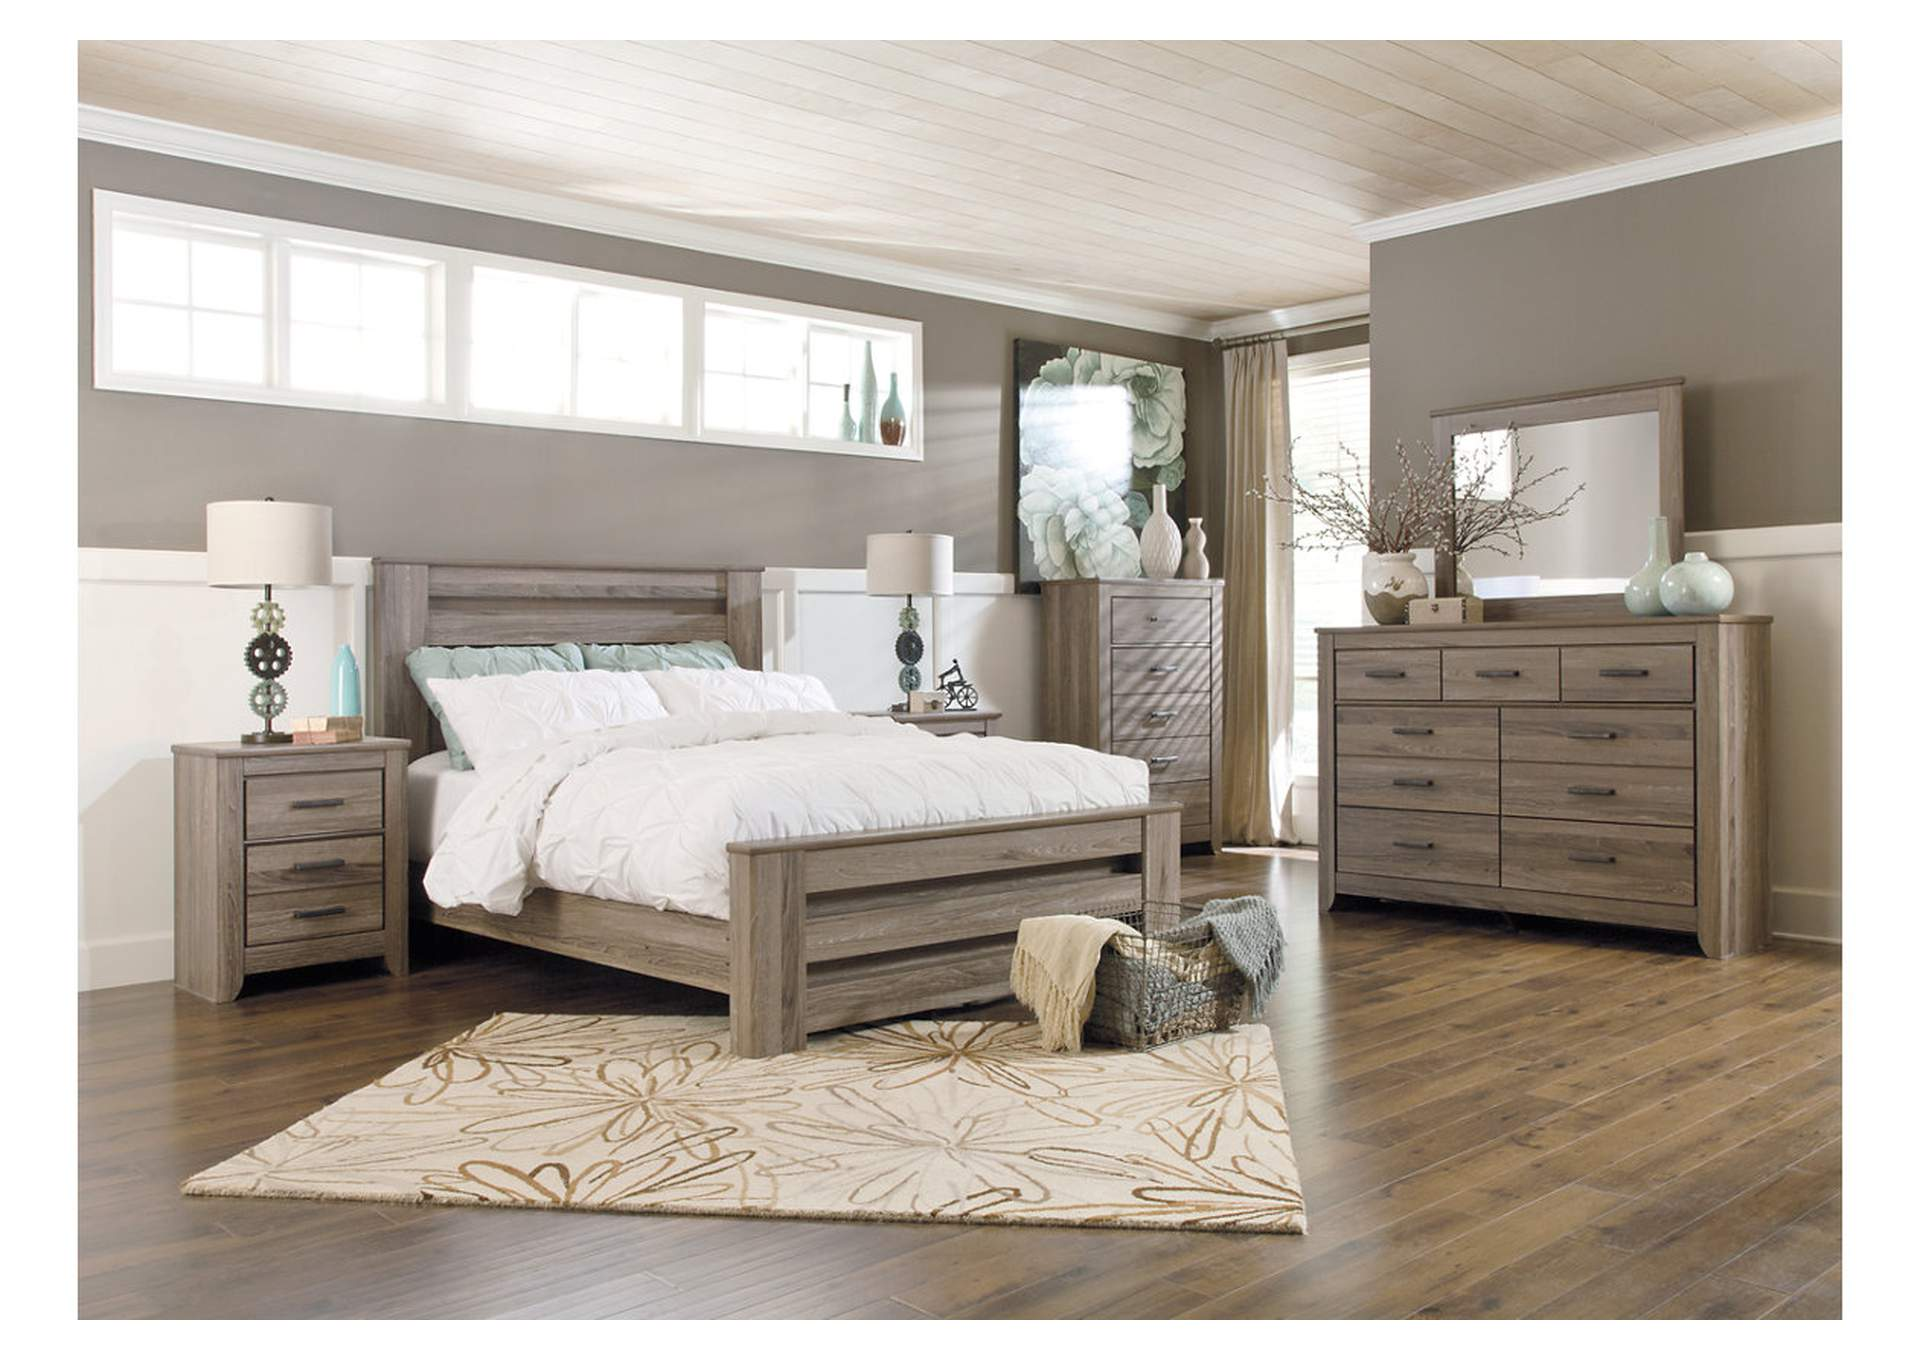 Zelen King Poster Bed w/Dresser, Mirror, Drawer Chest & Nightstand,Signature Design By Ashley